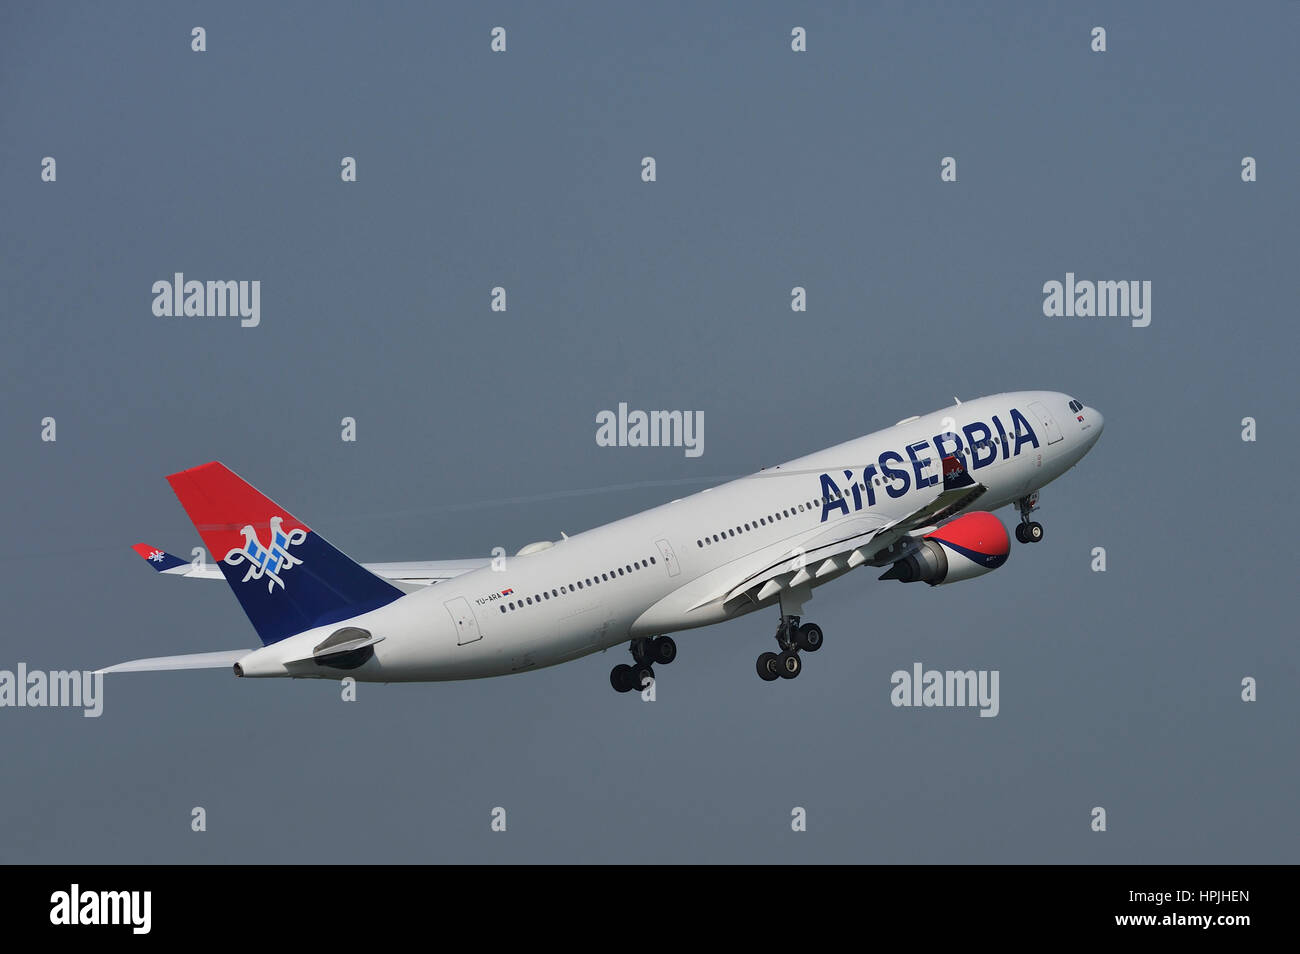 Air Serbia, national airline of Serbia Airbus A330 two-engine widebody passenger used for Belgrade to New York flights - Stock Image